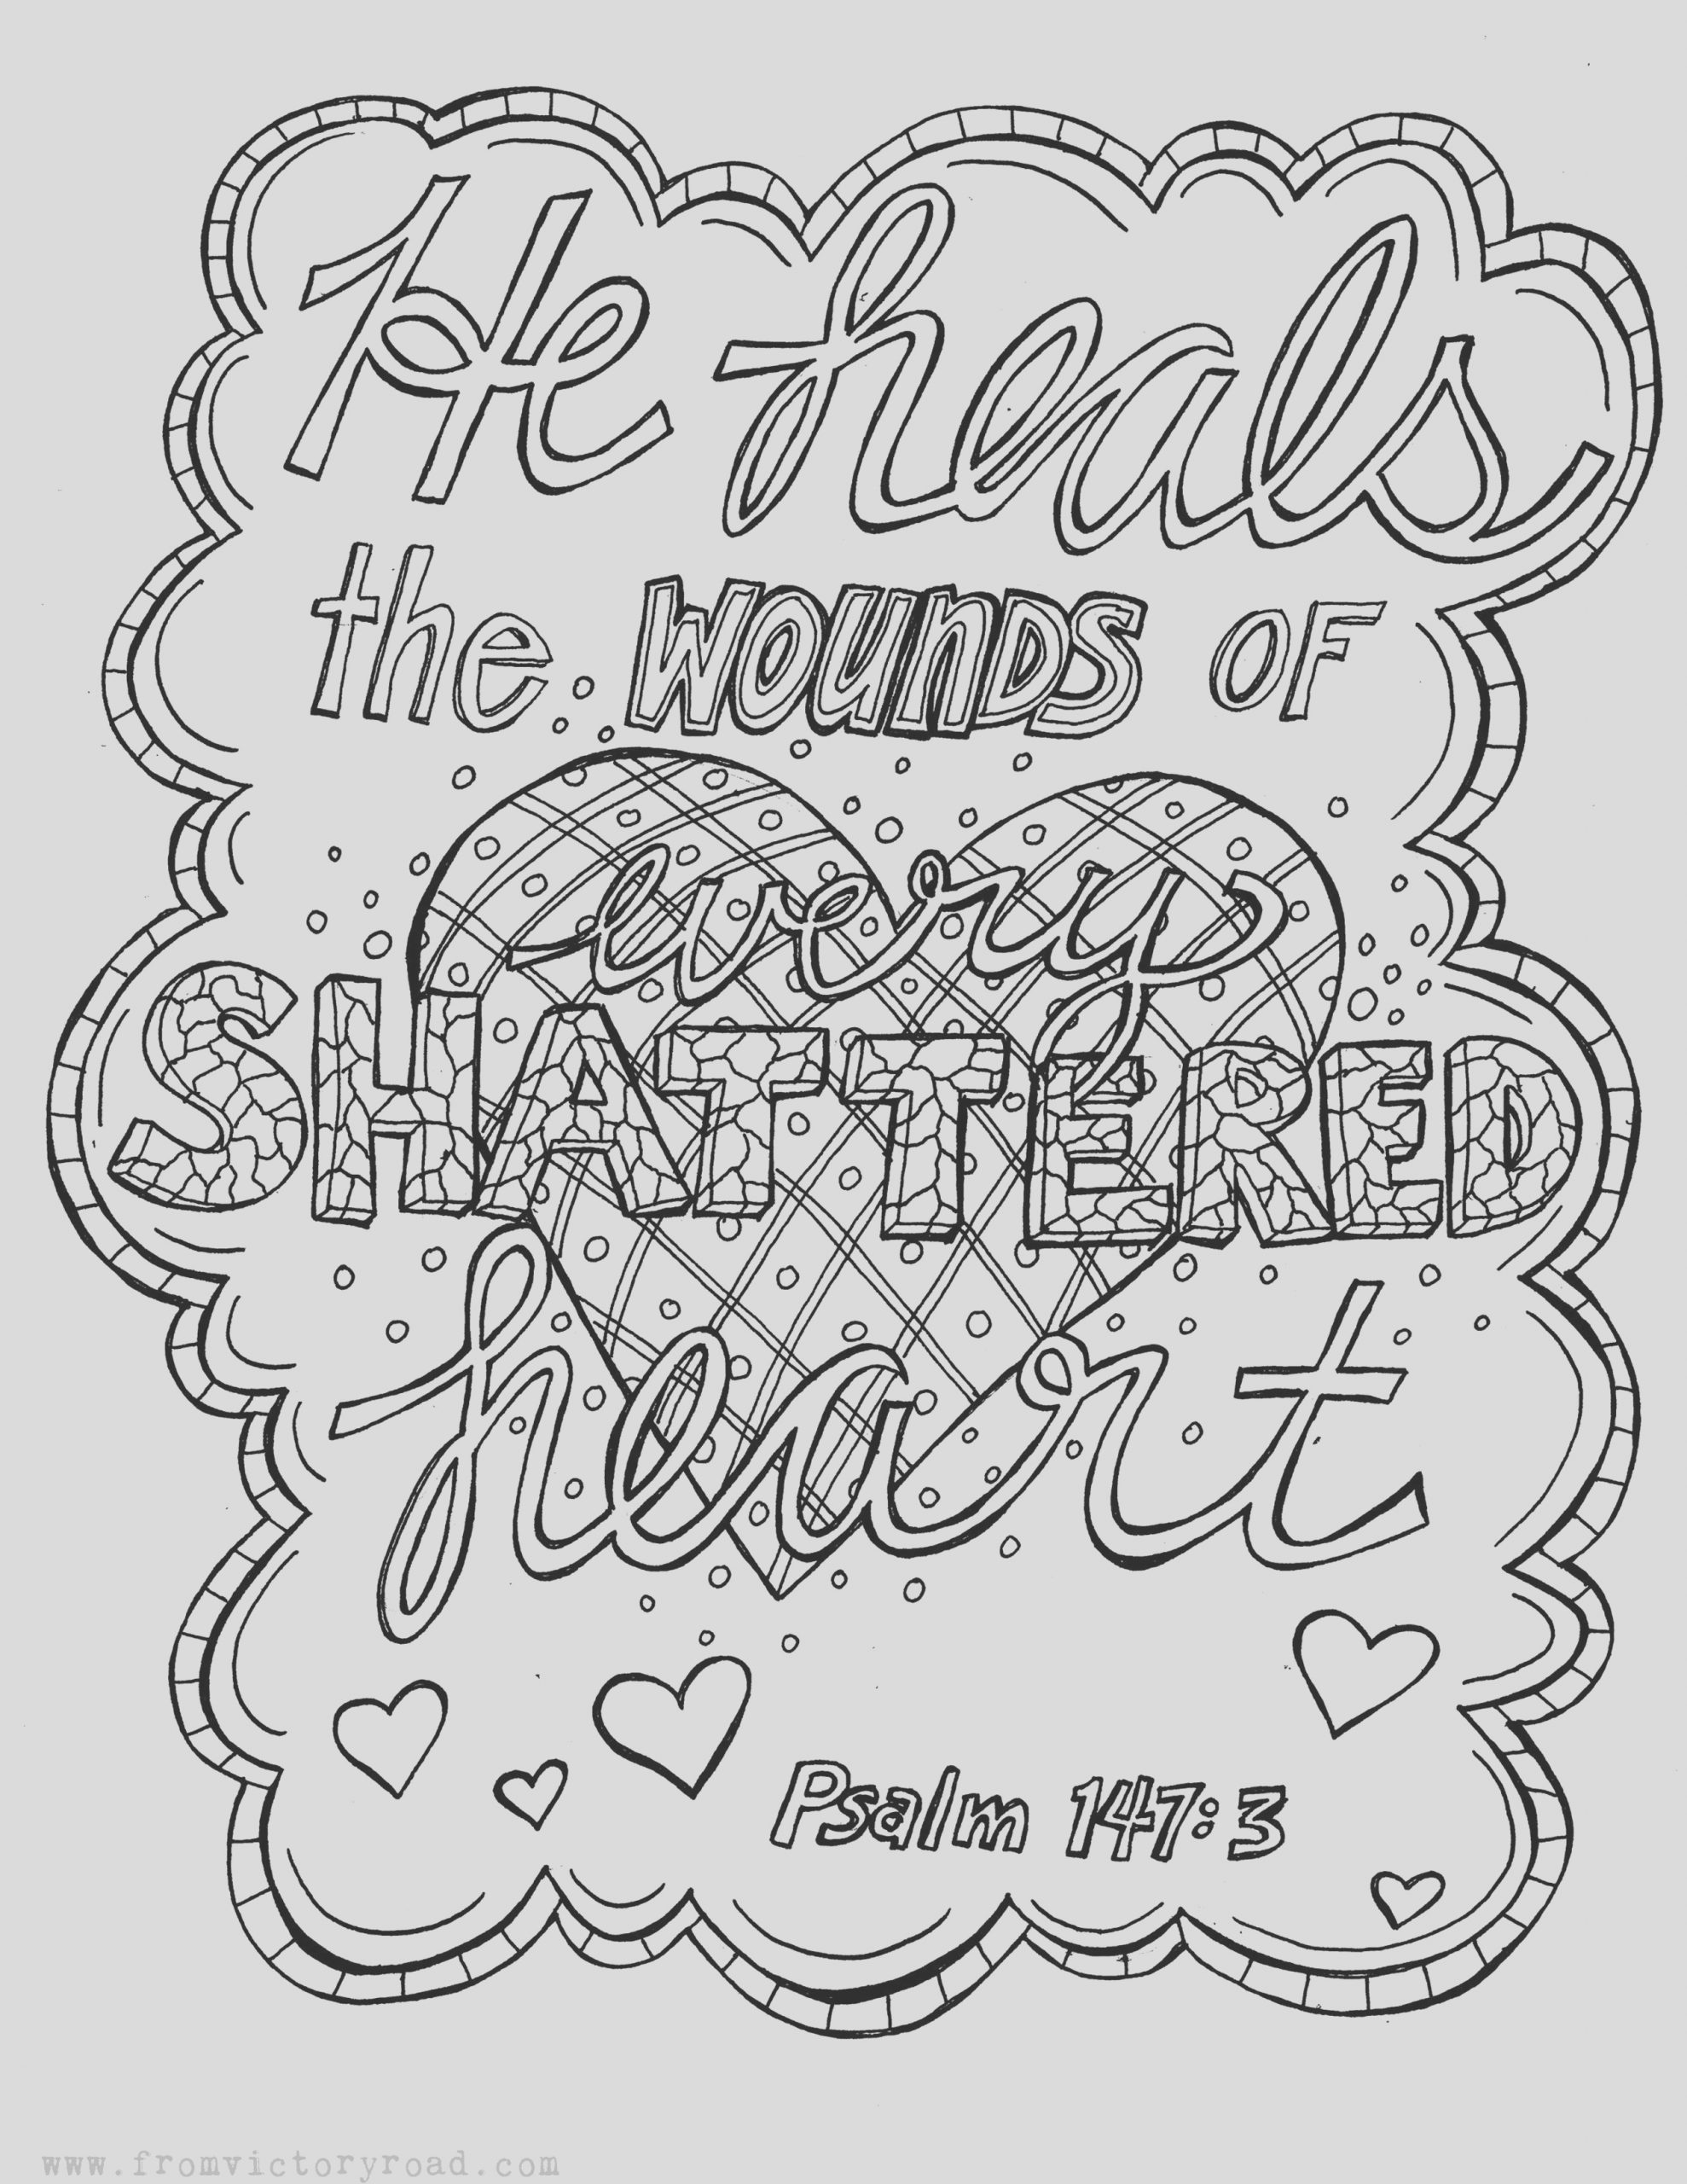 psalm 1473 coloring page